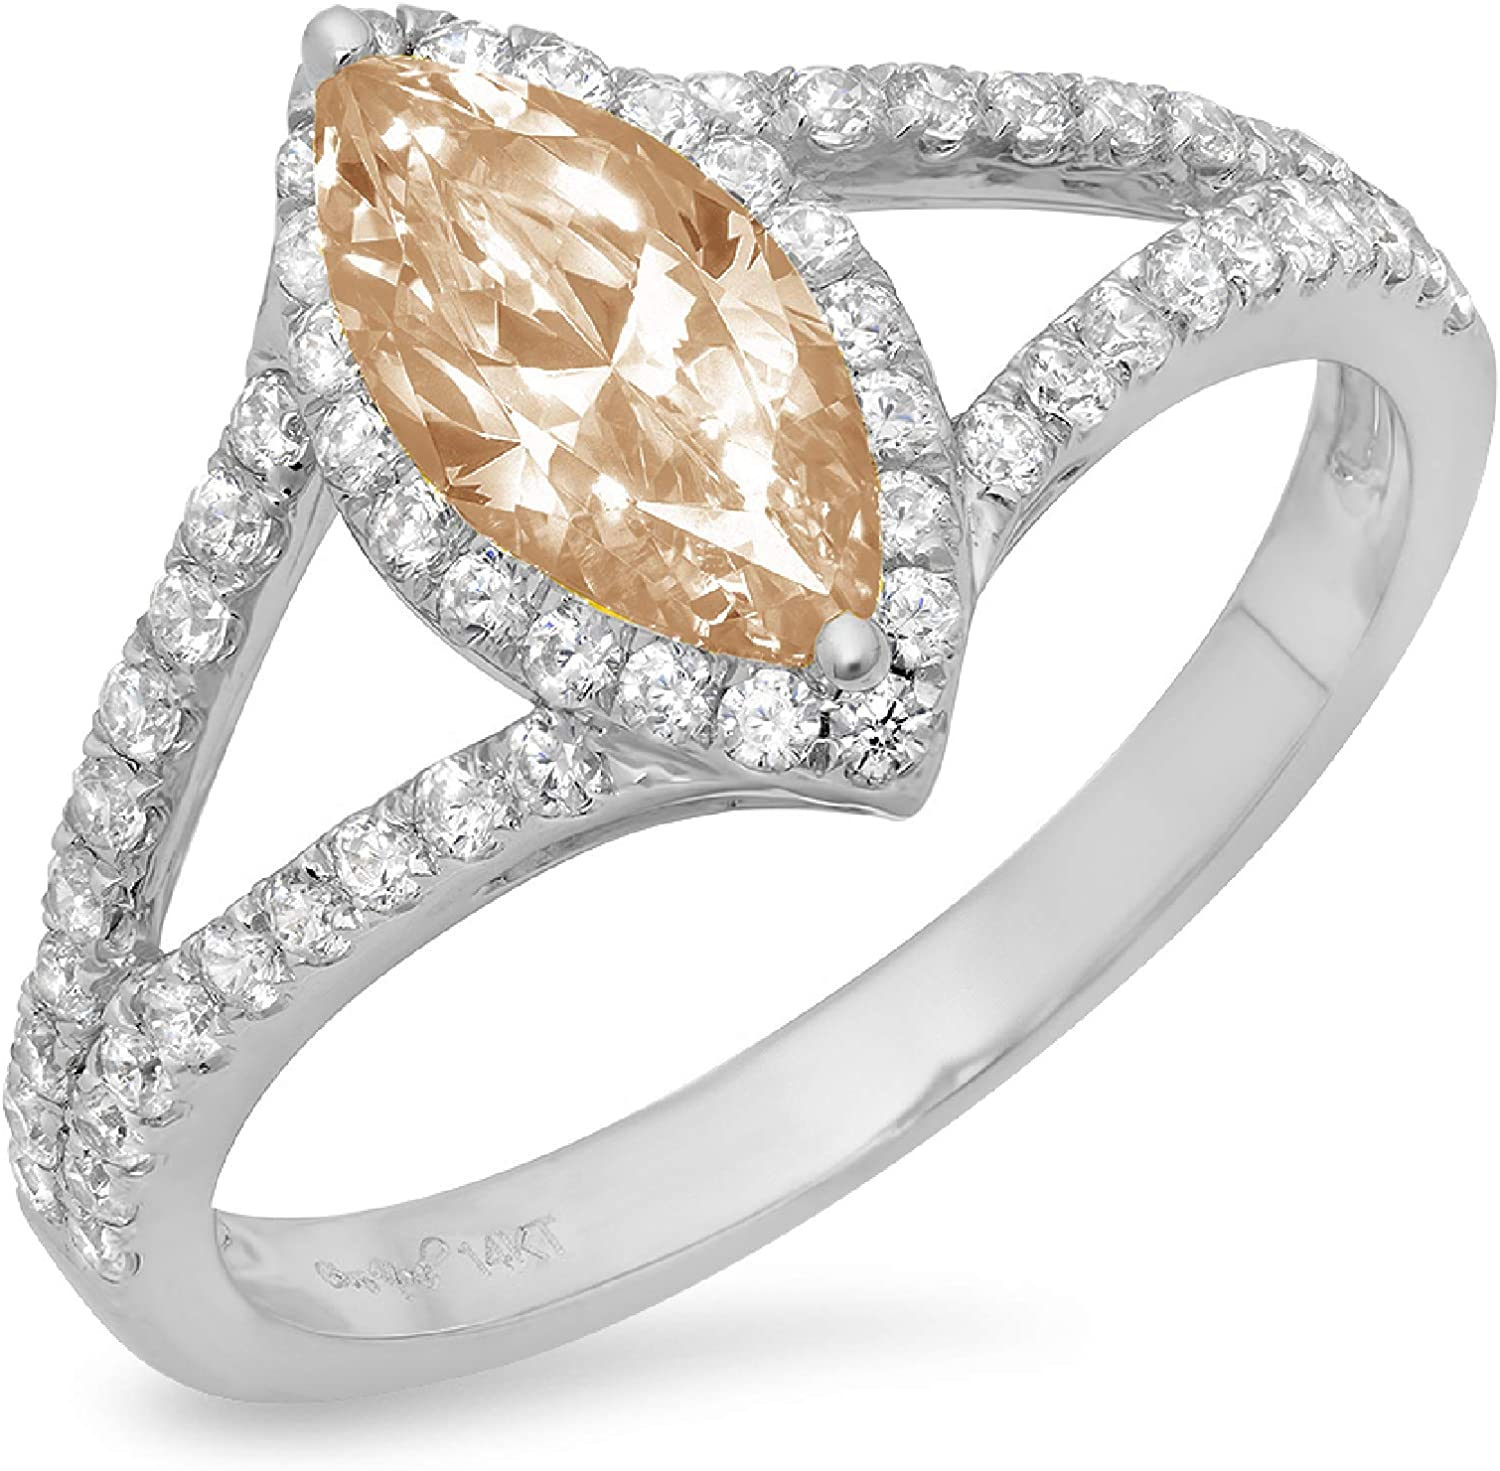 1.20ct Marquise Cut Solitaire with Accent split shank Halo Brown Champagne Simulated Diamond Ideal VVS1 Engagement Promise Statement Anniversary Bridal Wedding Ring 14k White Gold